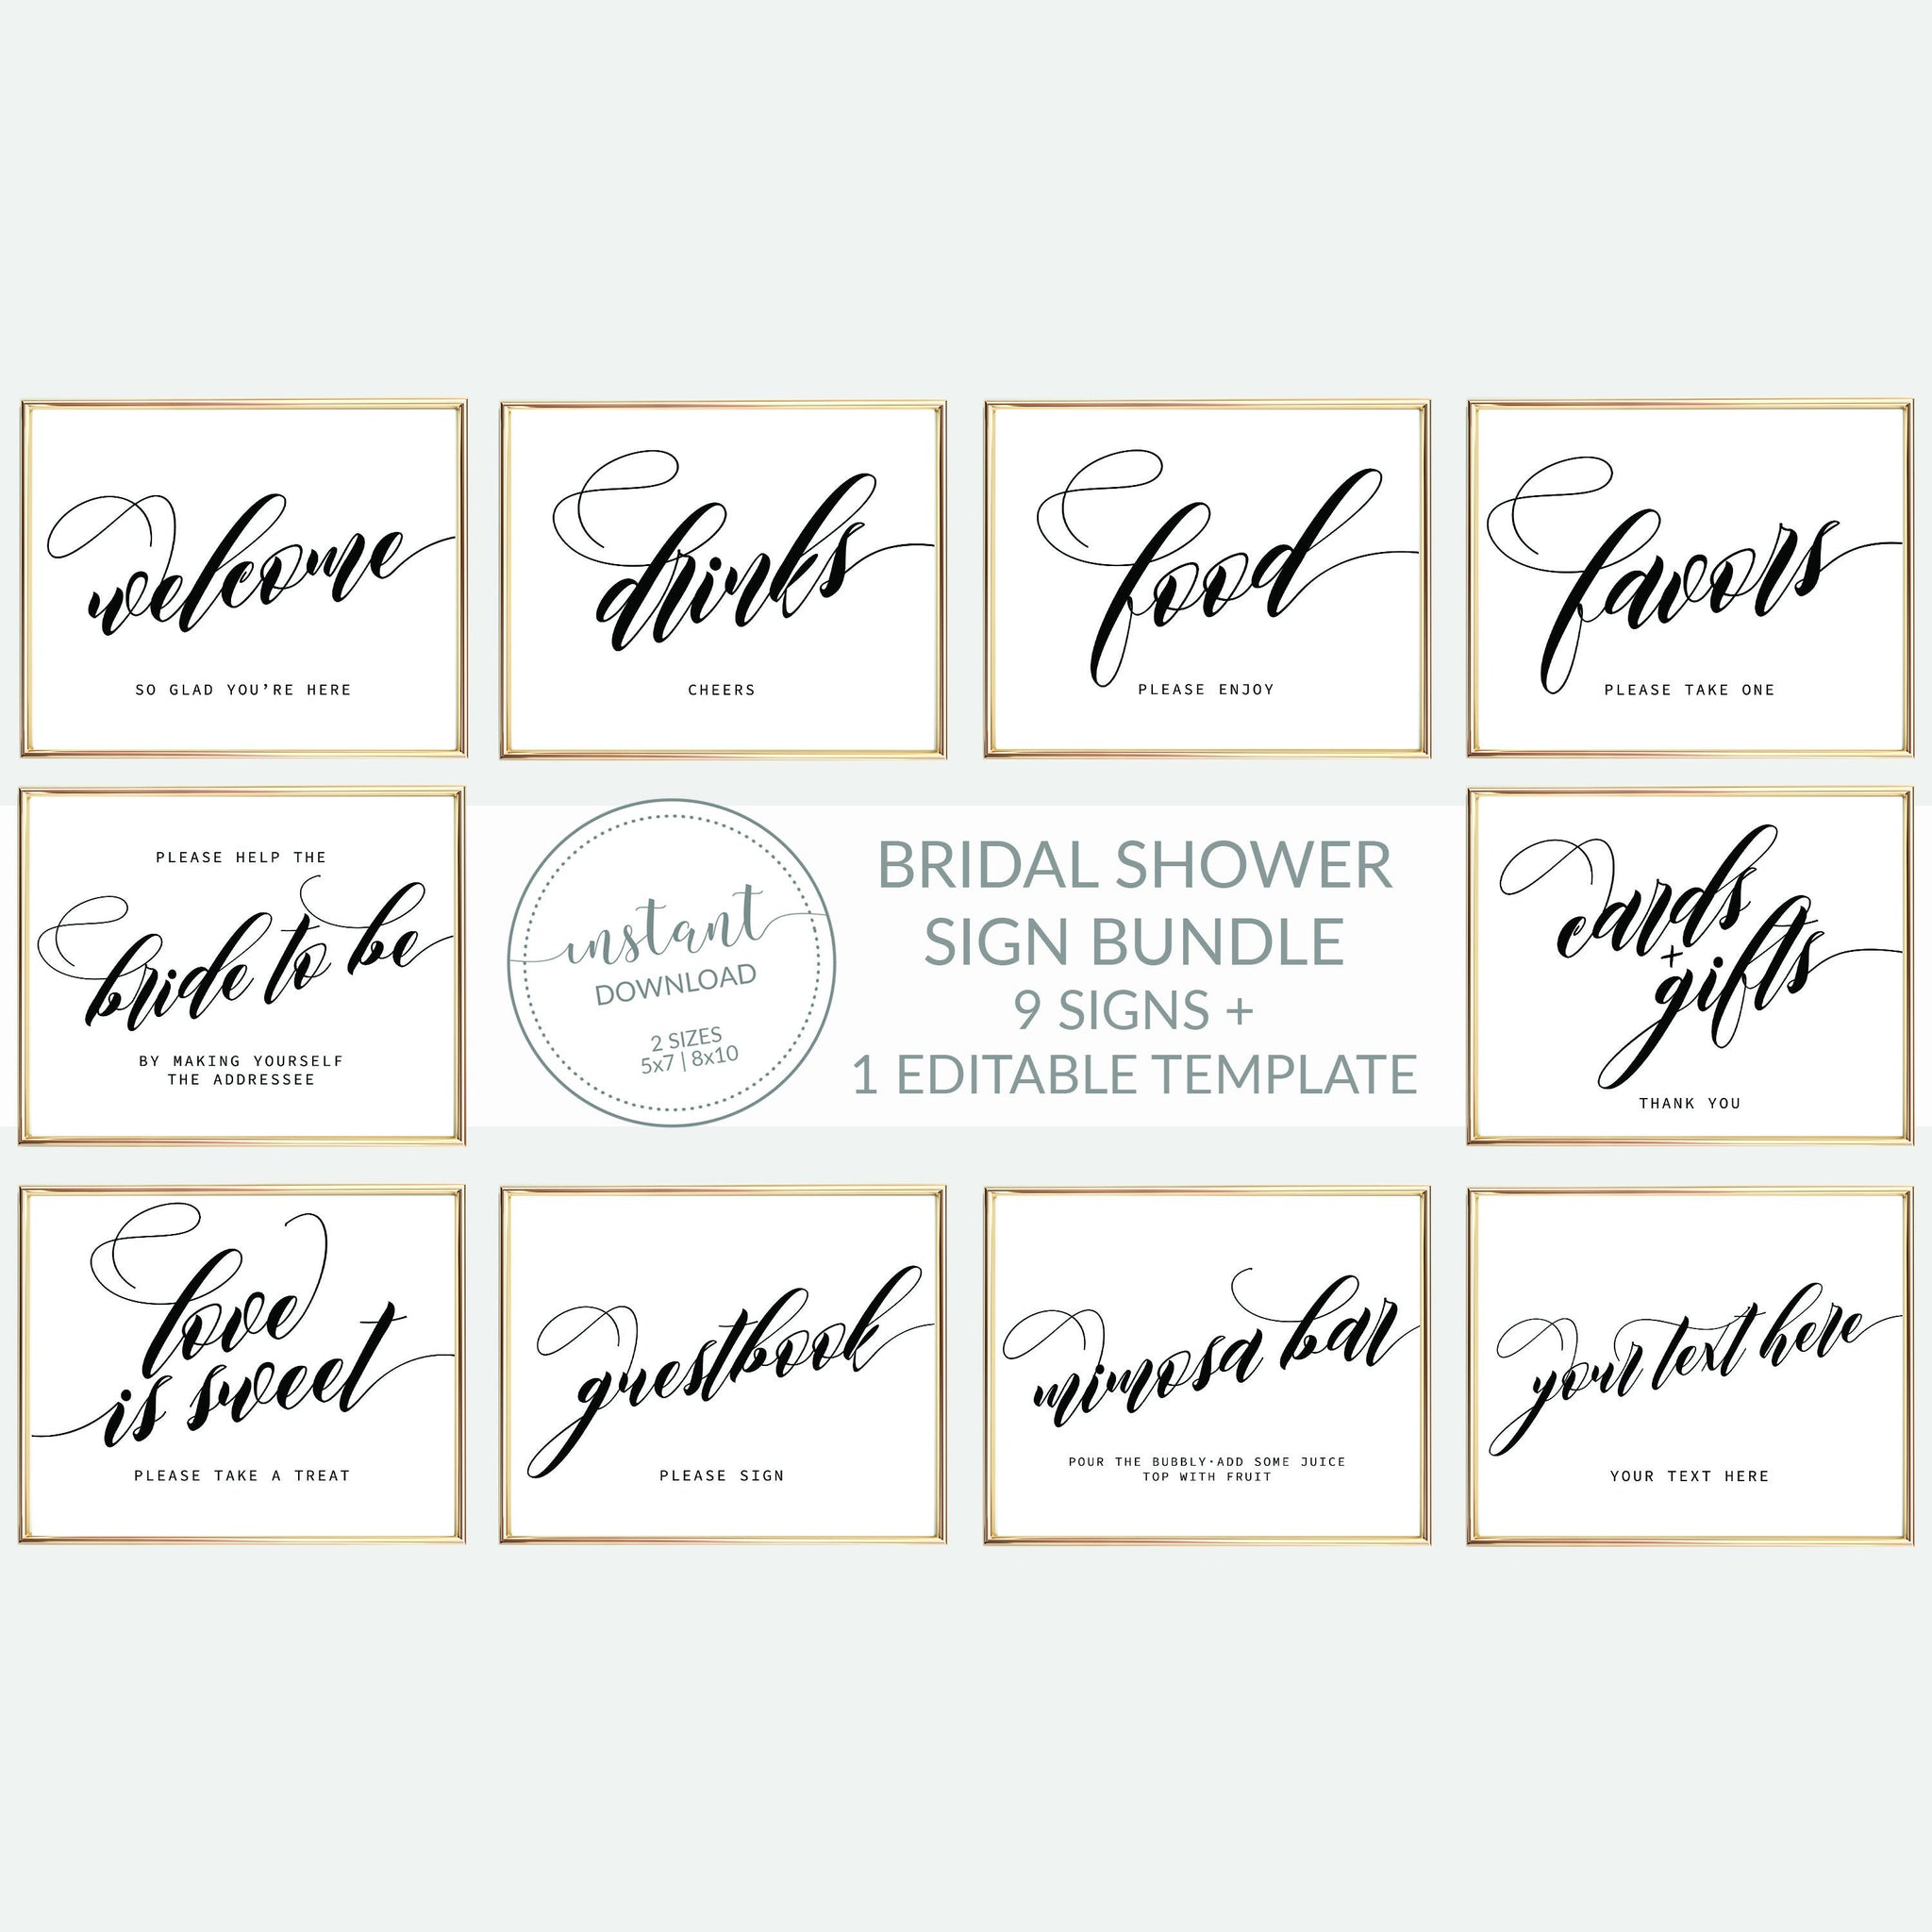 Wine Tasting Score Card, Wine Tasting Party Decorations, Bridal Shower Wine Theme, Wine Bachelorette Party, INSTANT DOWNLOAD - SFB100 - @PlumPolkaDot